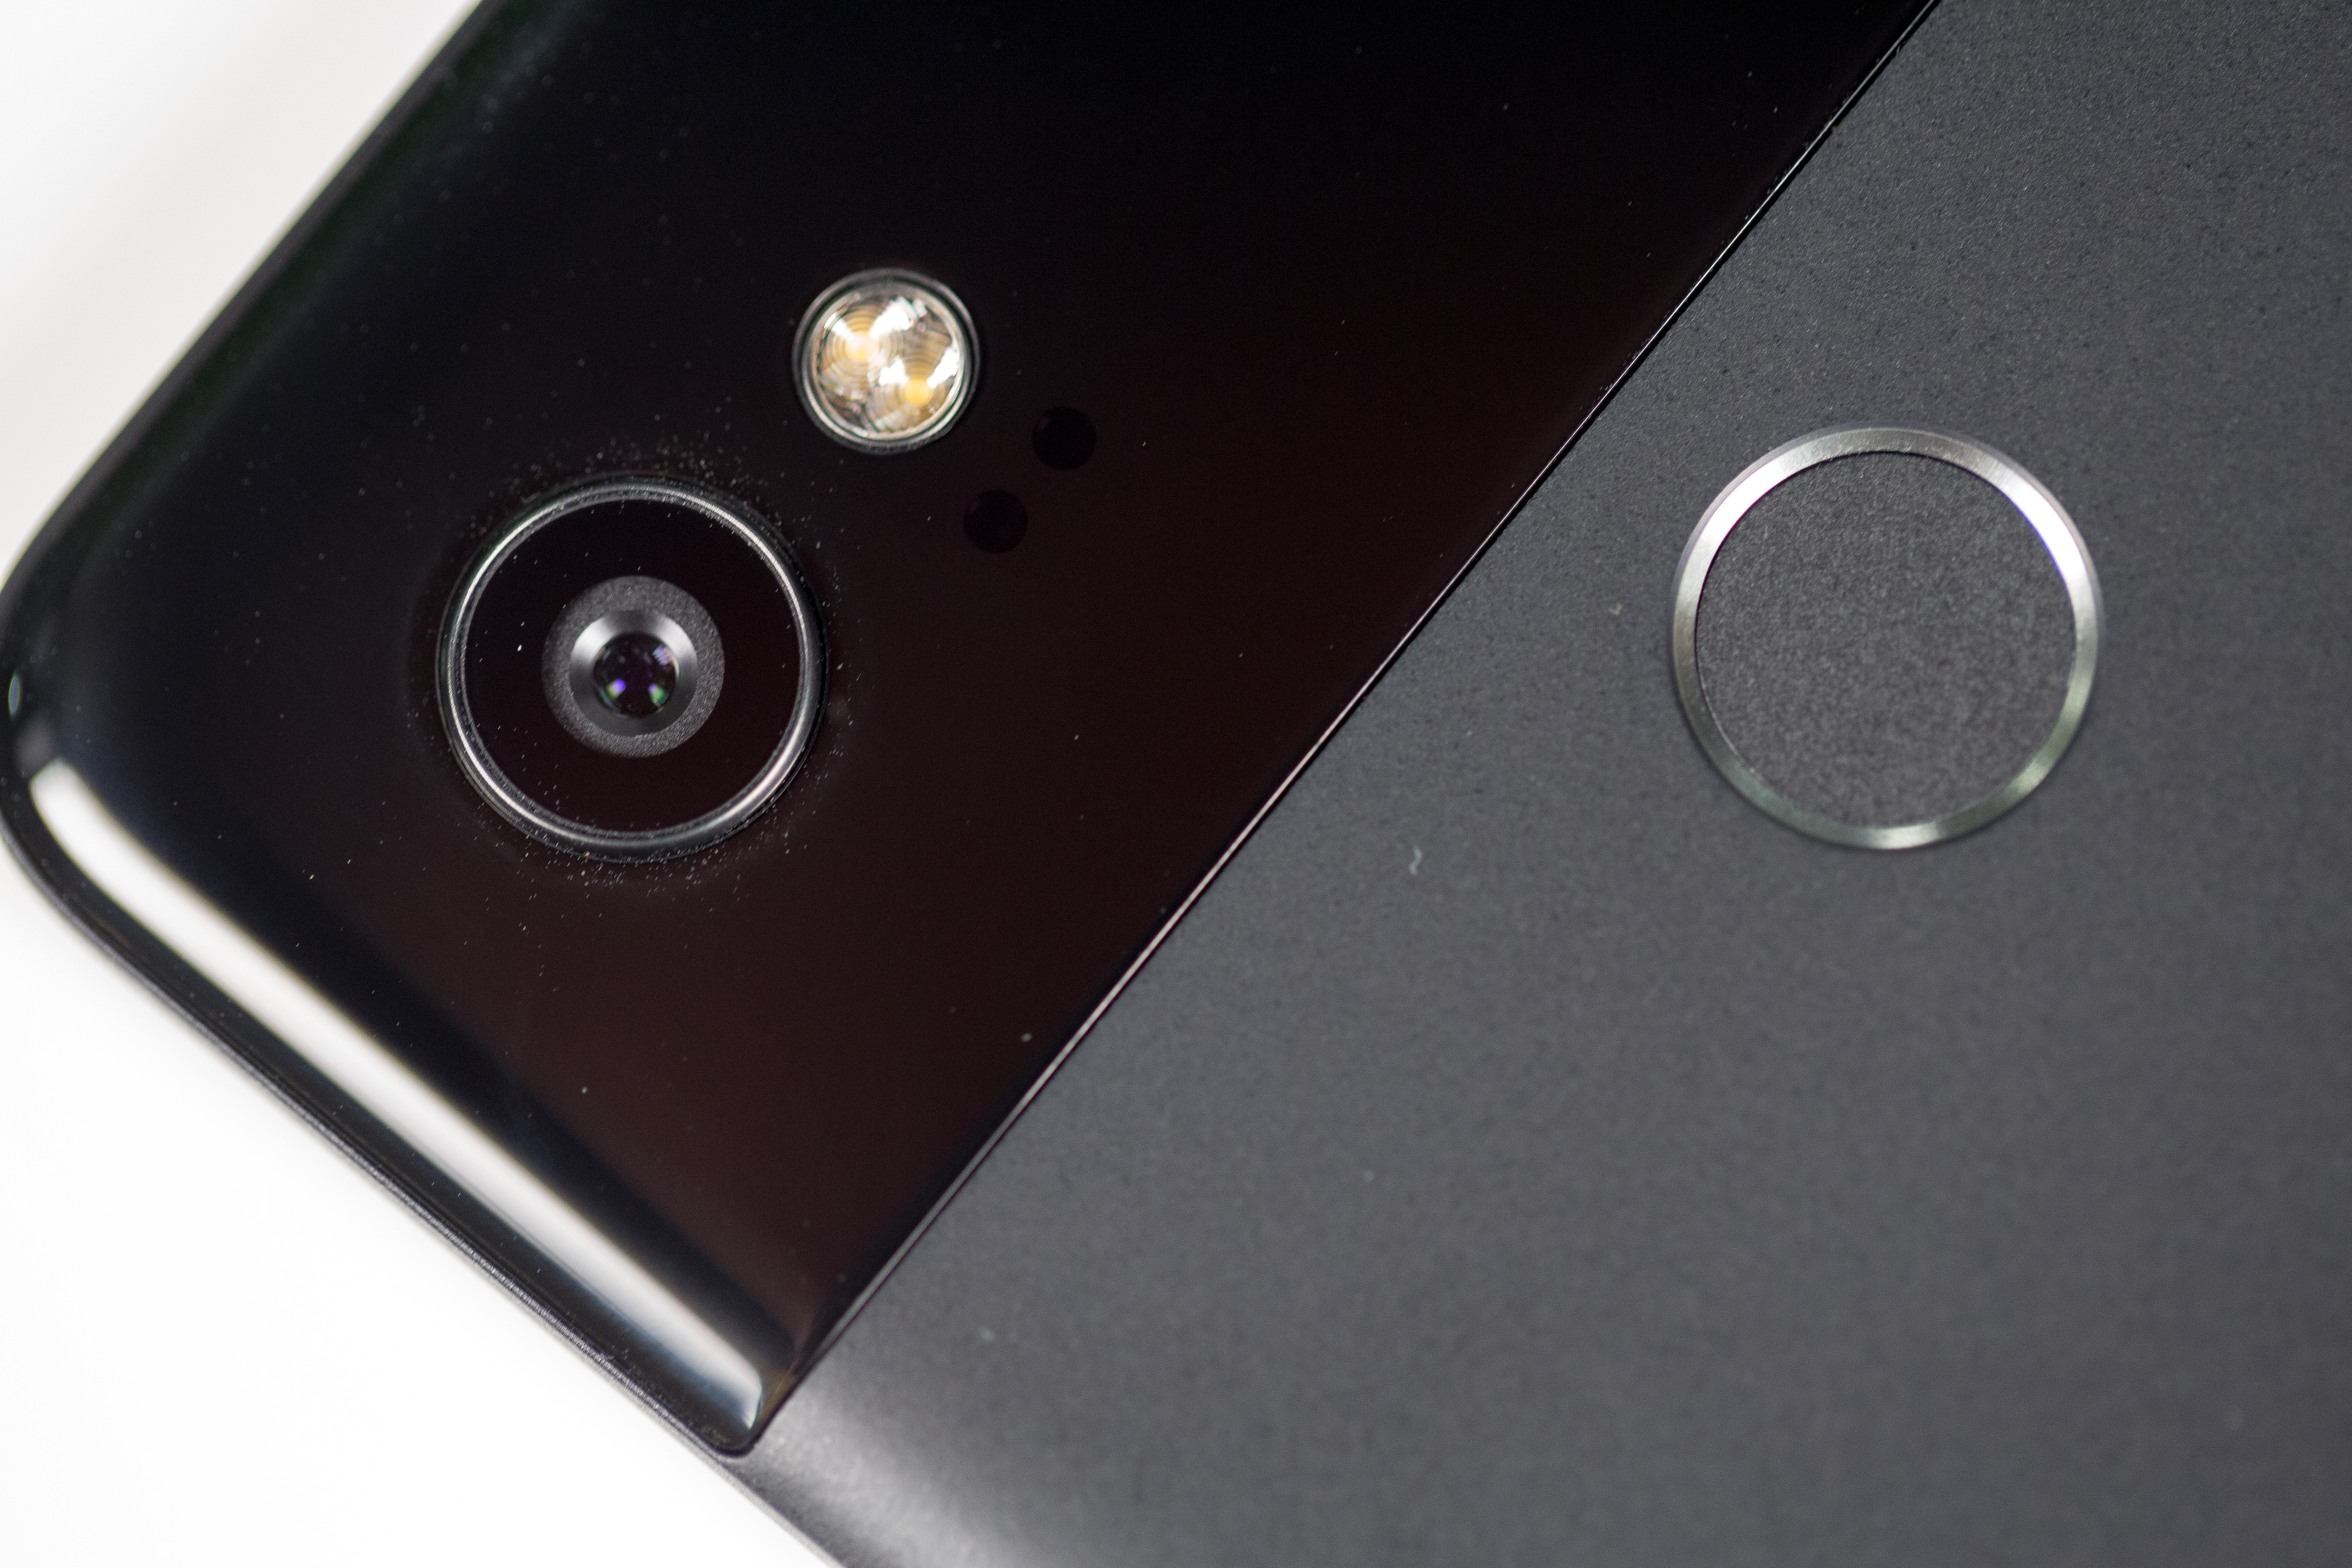 The Pixel 2's dormant Visual Core chip gets activated in the latest Android developer preview